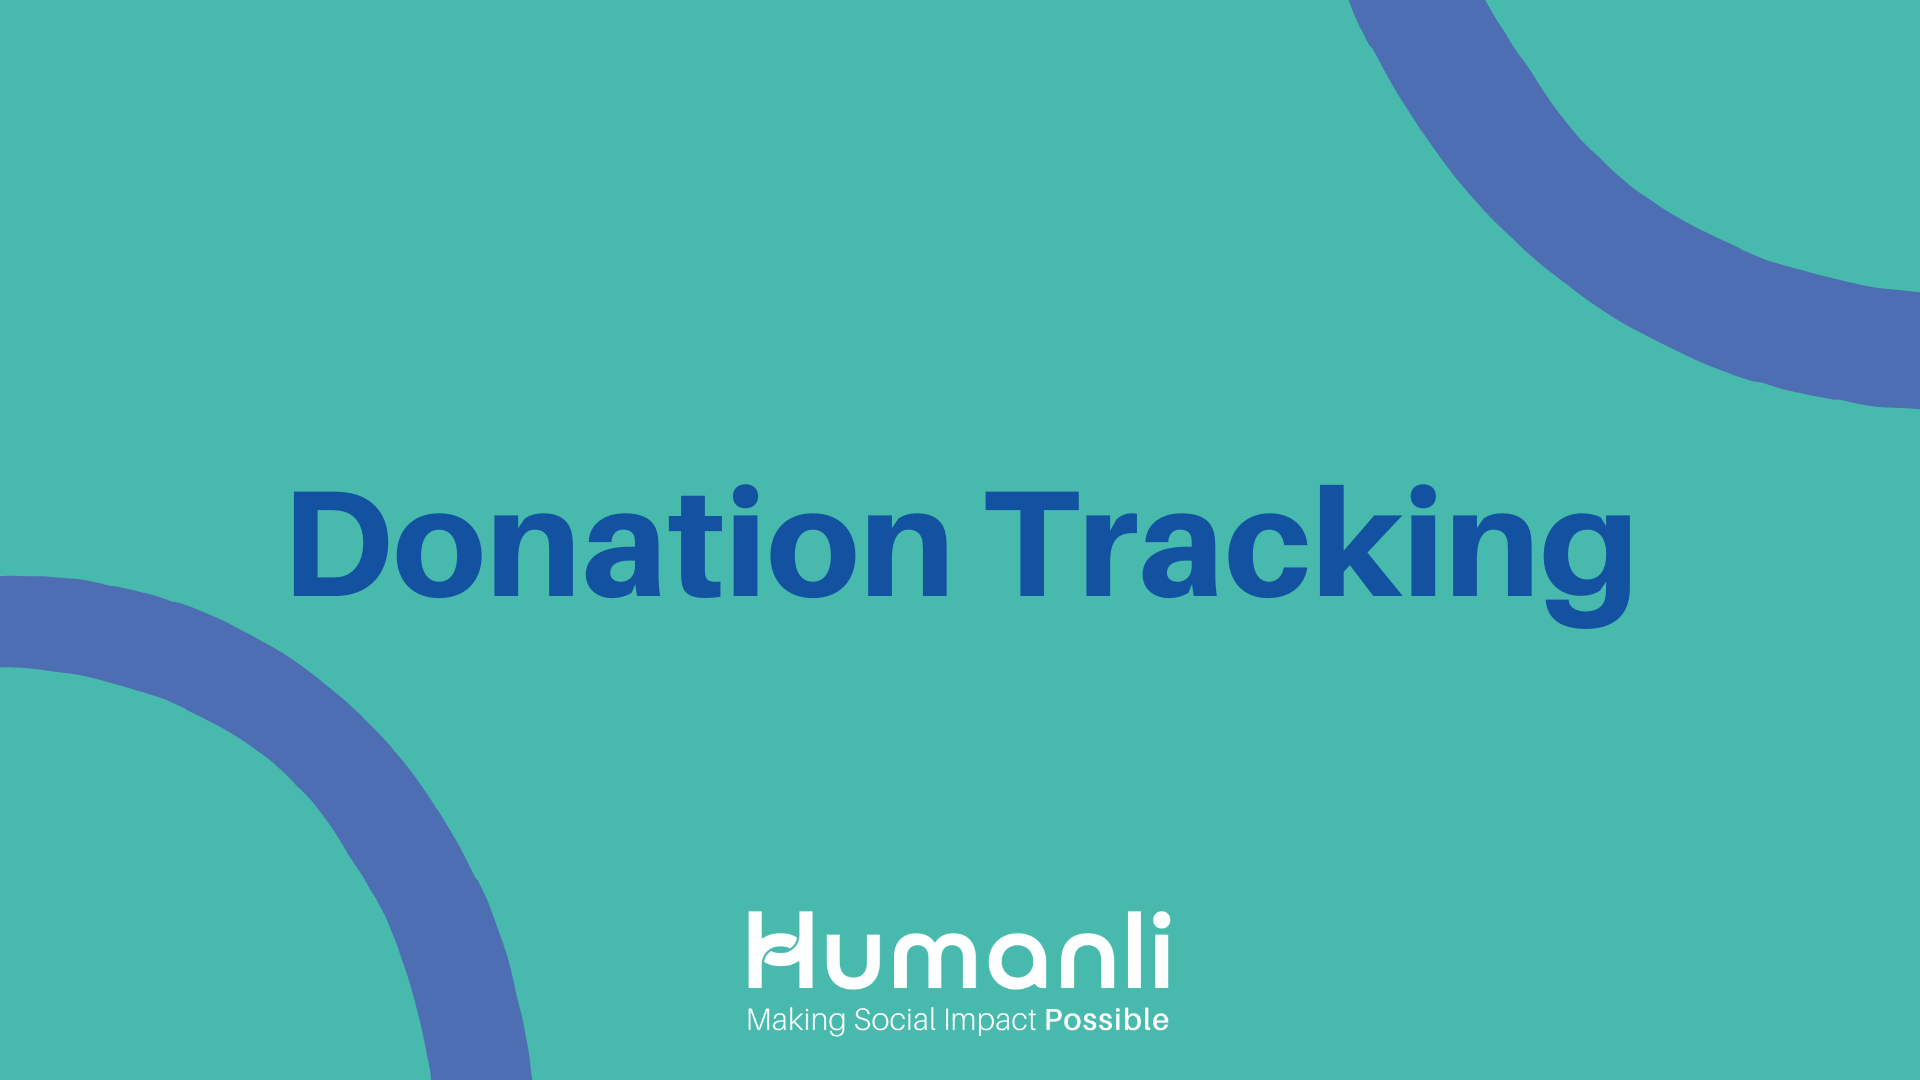 Donation Tracking